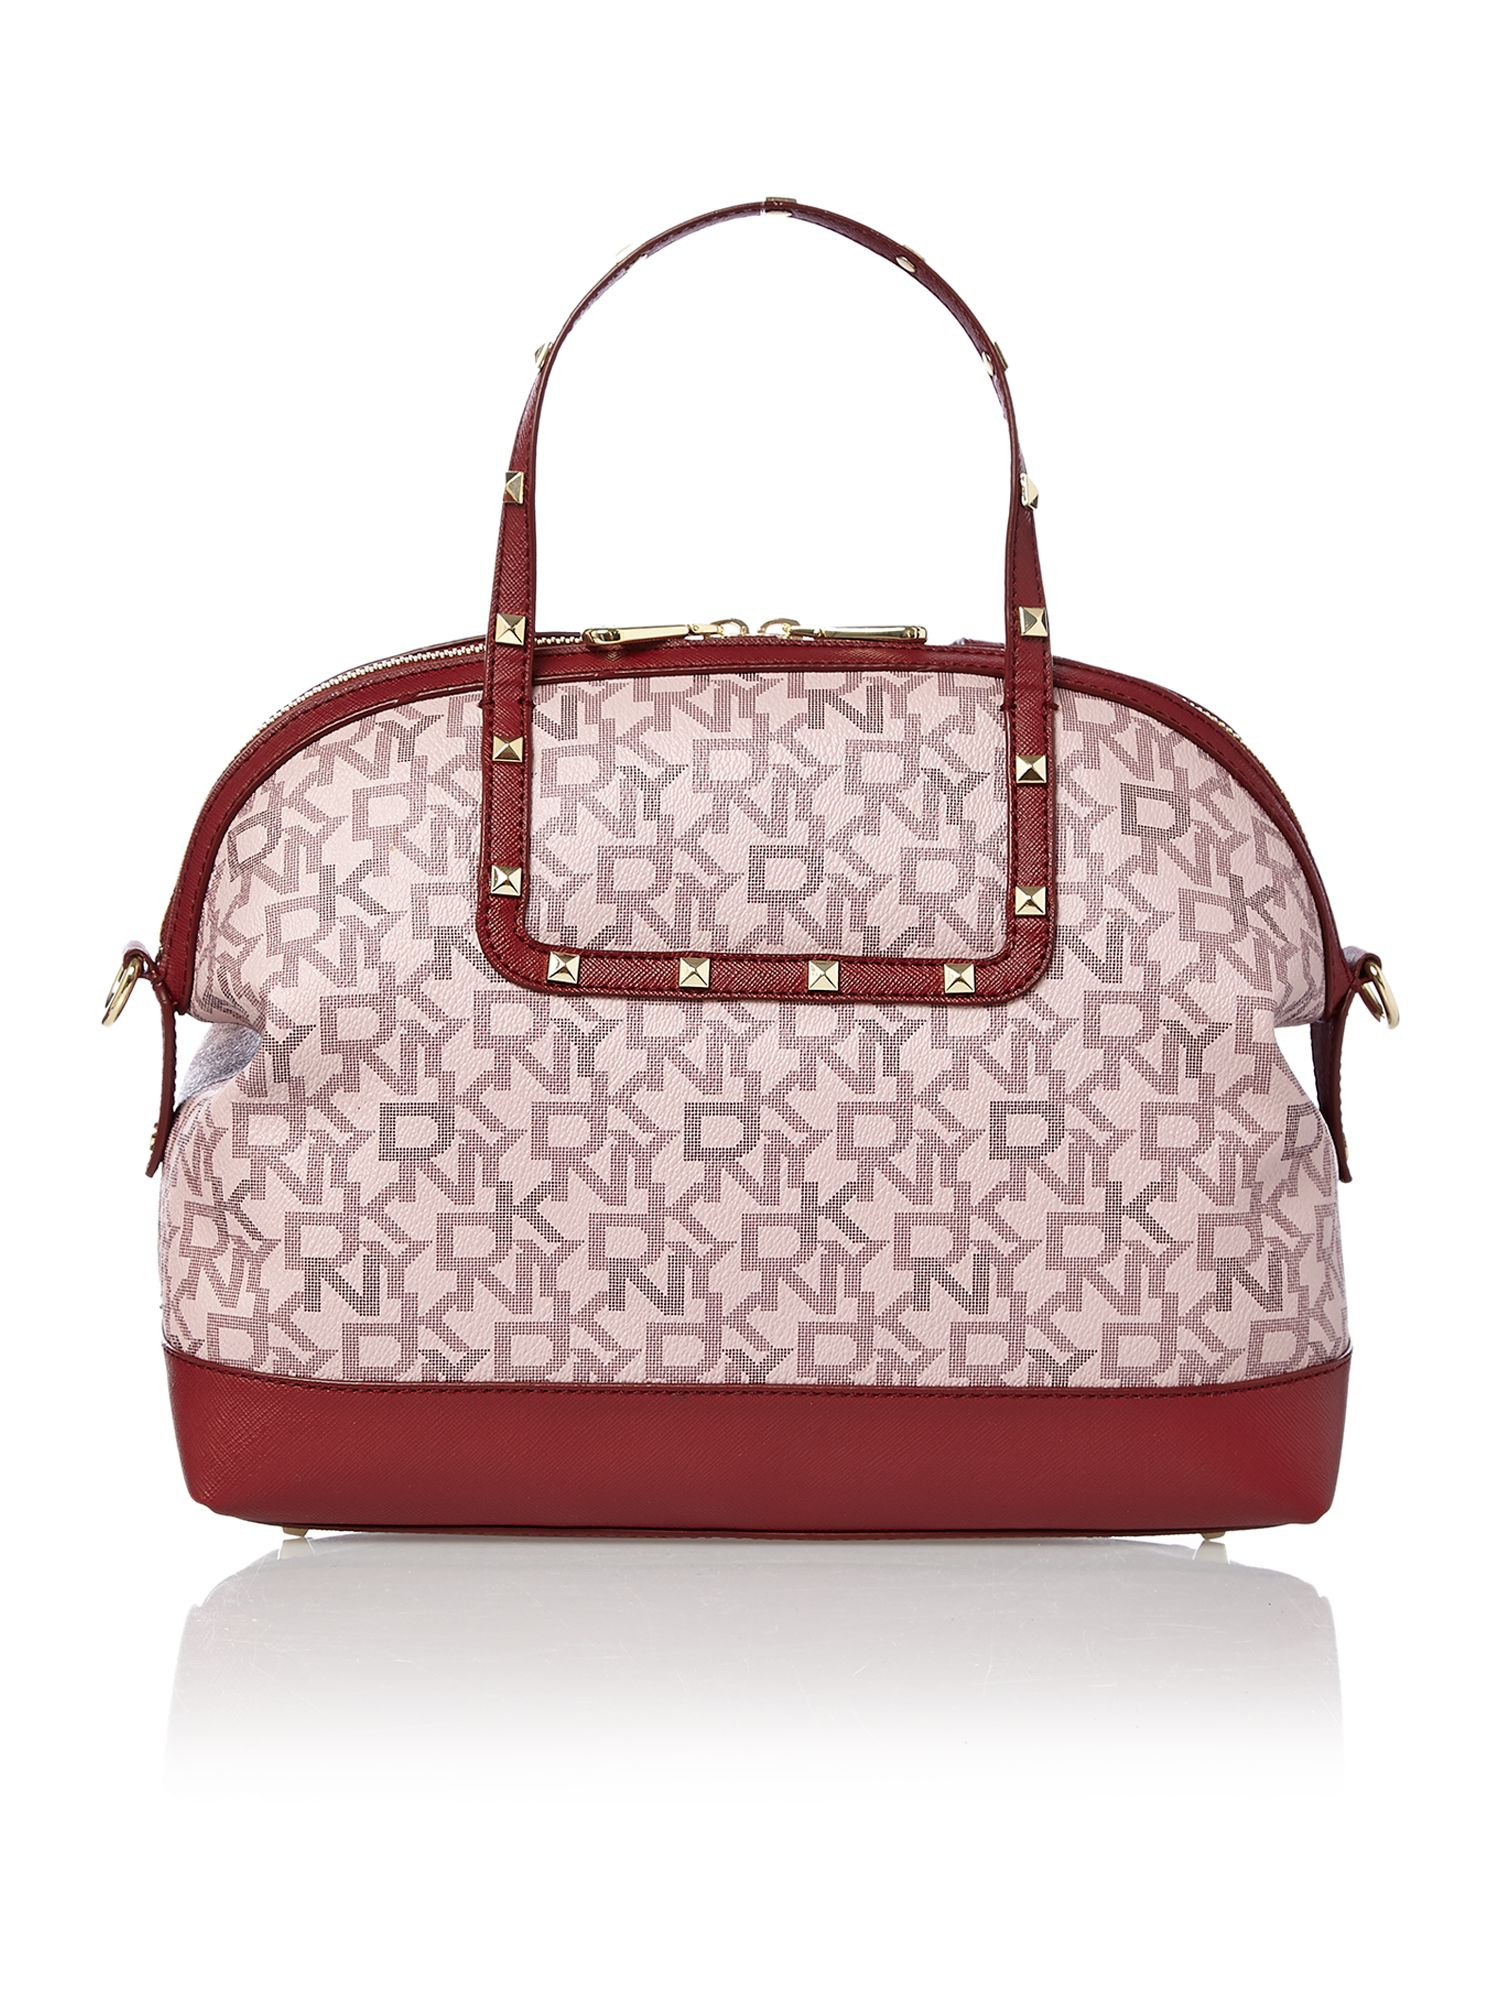 Coated logo red rounded satchel with studs